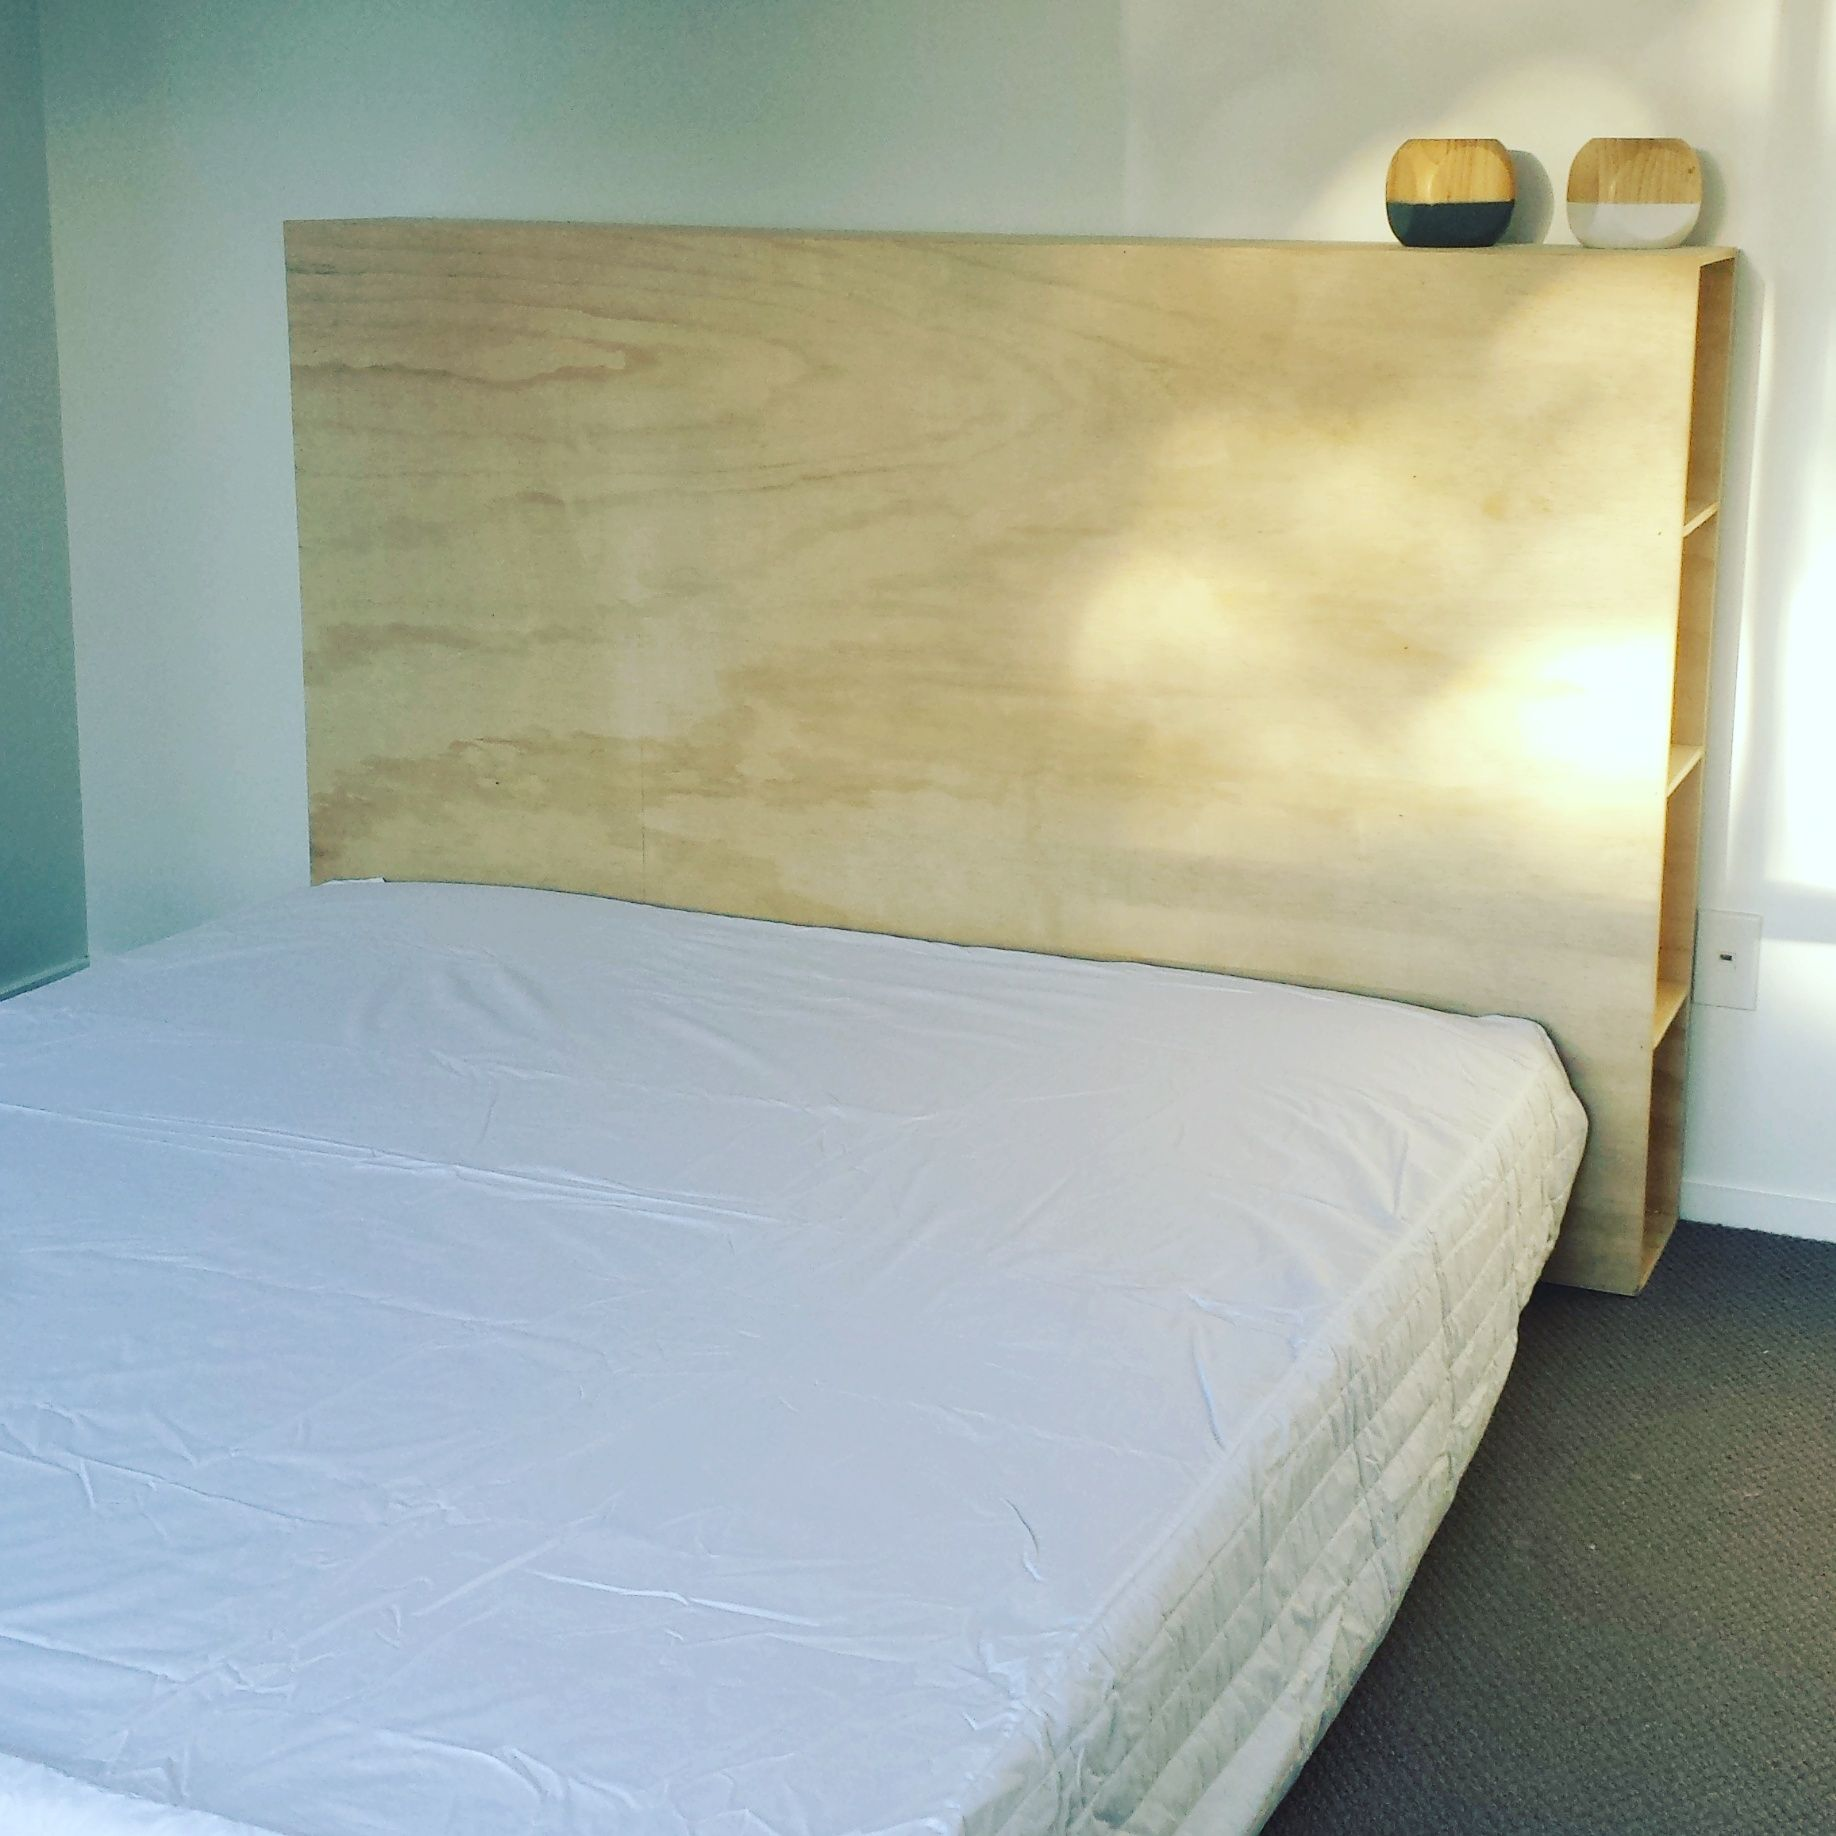 Our plywood headboard with shelves down the side so we no longer